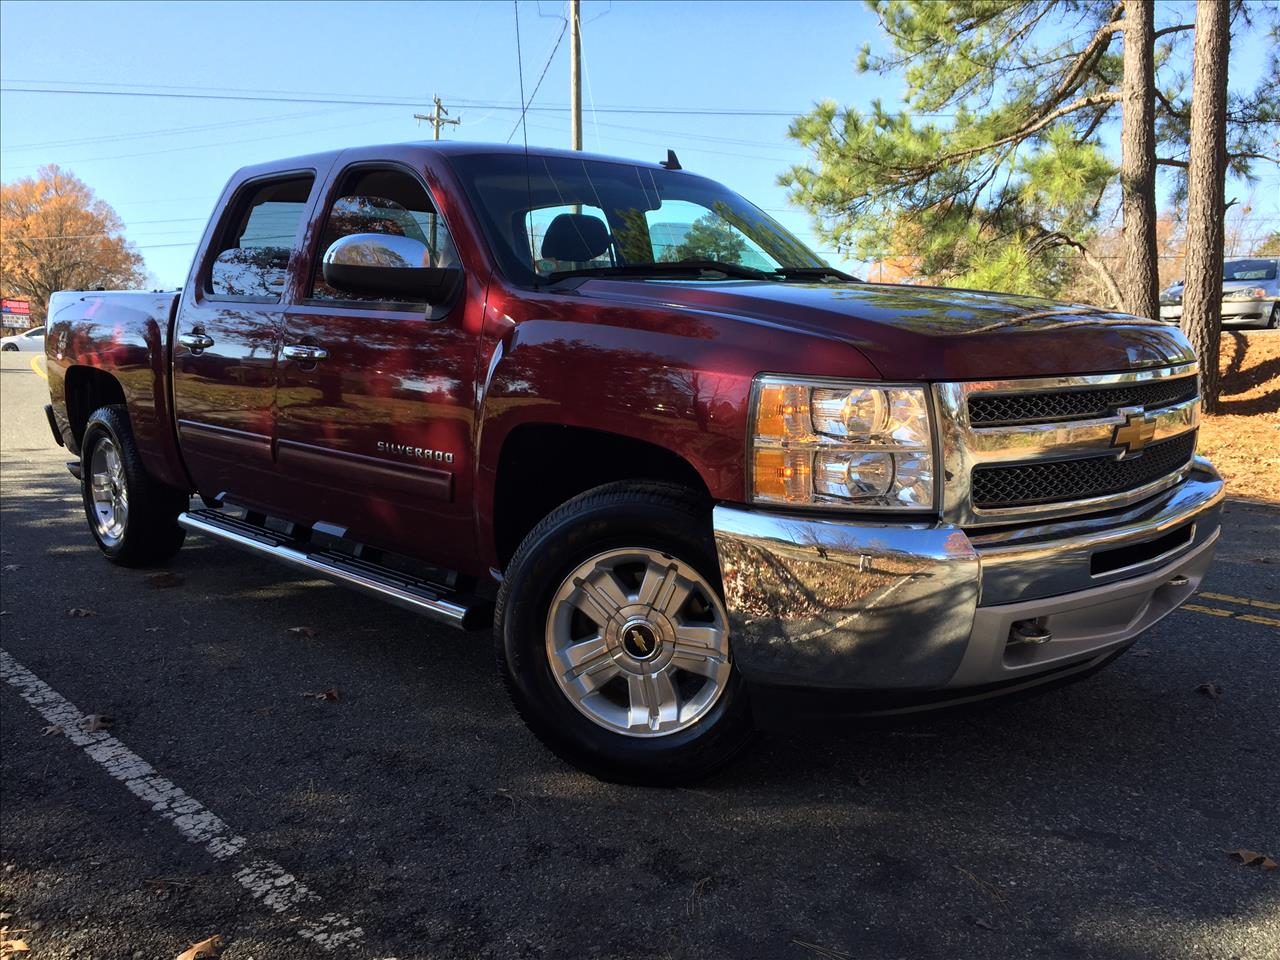 2013 chevrolet silverado 1500 4x4 lt 4dr crew cab 5 8 ft sb in durham nc the auto finders. Black Bedroom Furniture Sets. Home Design Ideas